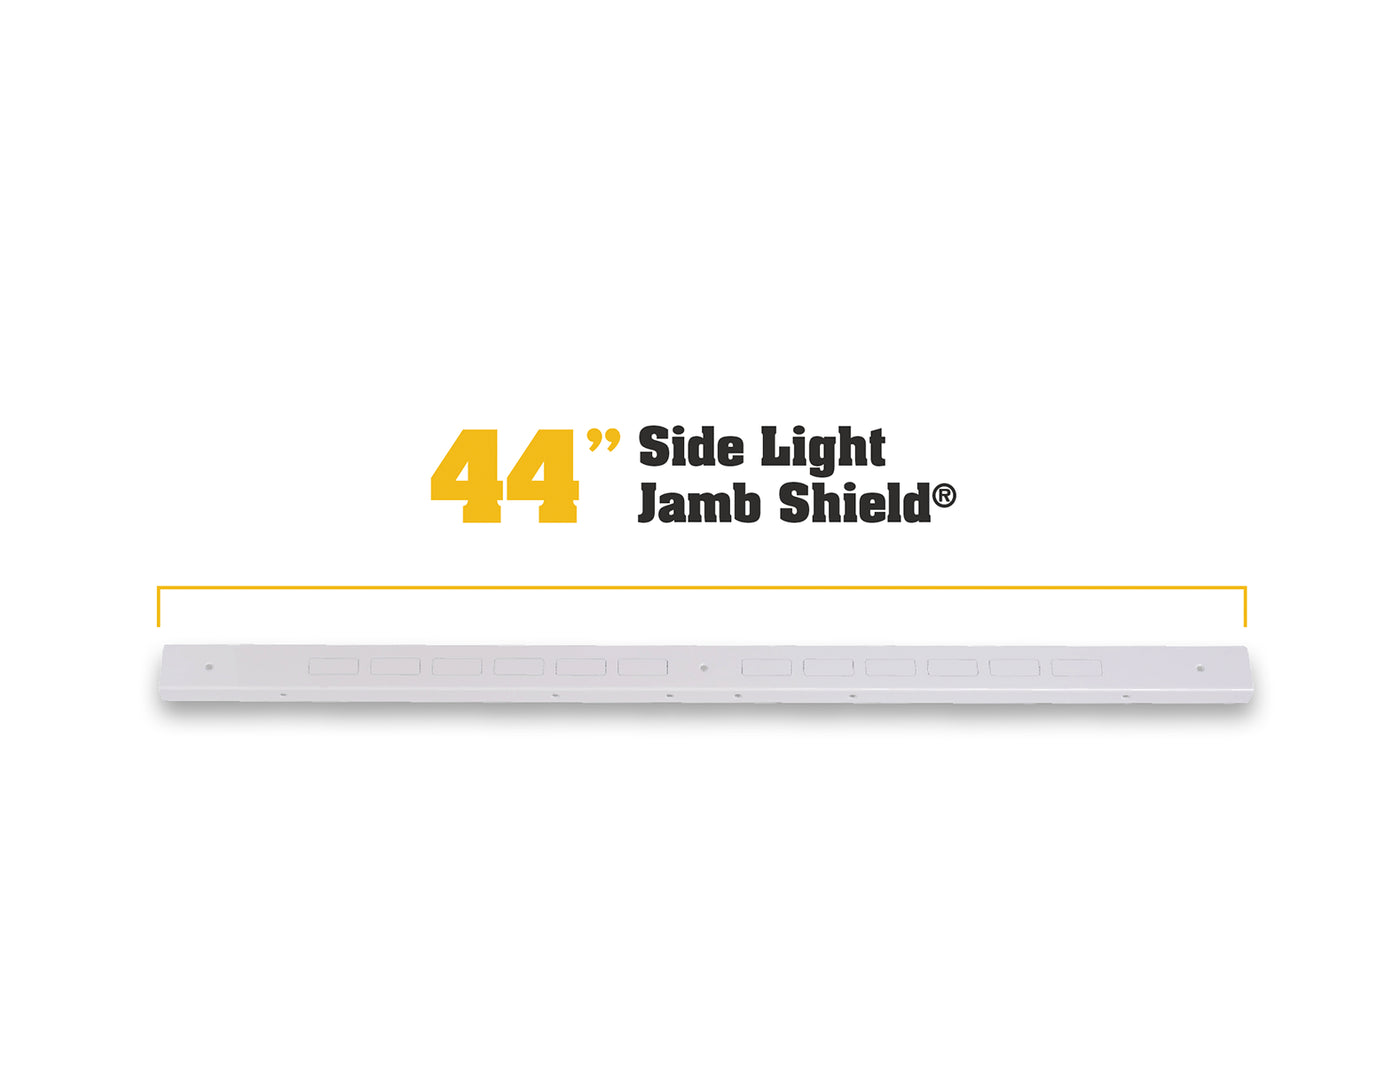 44 Quot Jamb Shield Reinforce Entry Door With One Sidelight